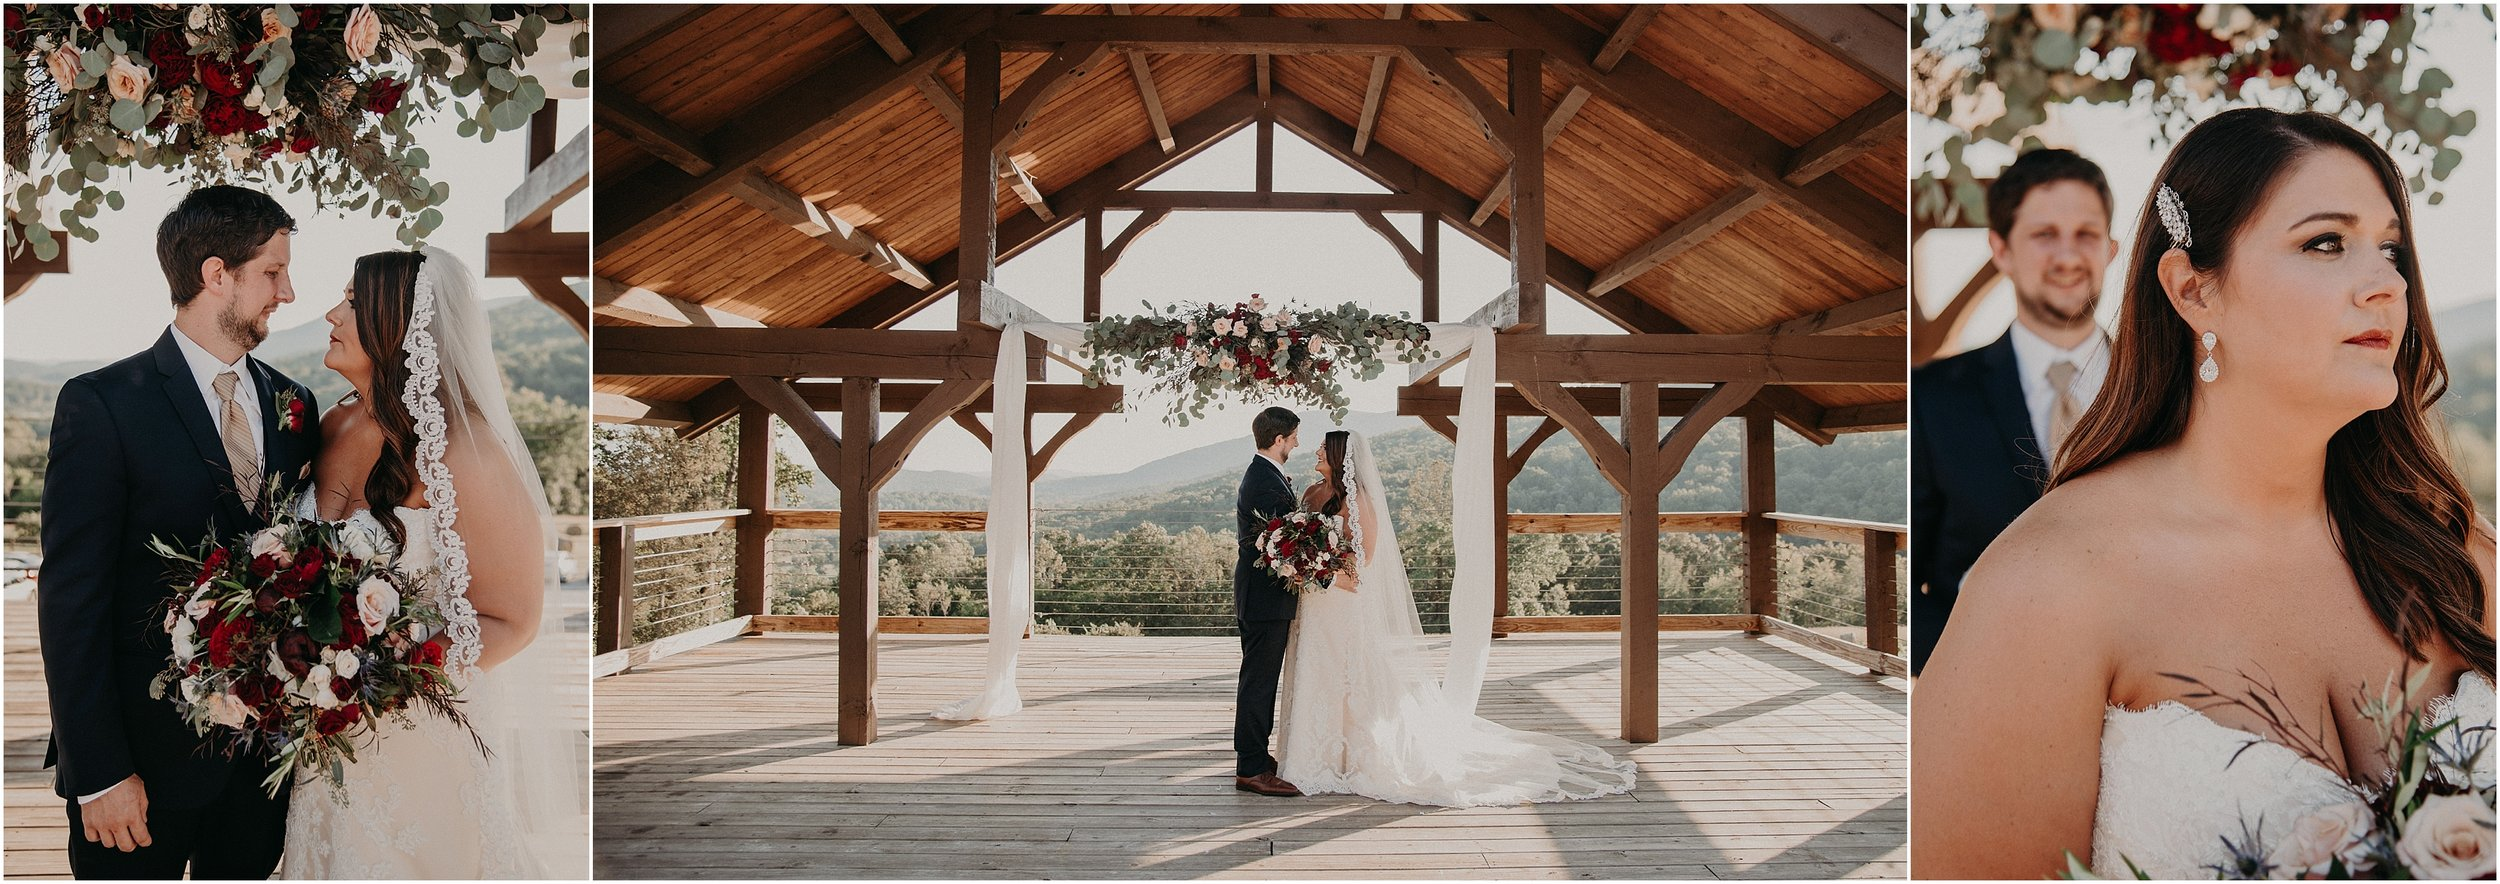 Bride and groom portraits beneath their altar with floral design by Chickamauga Florist